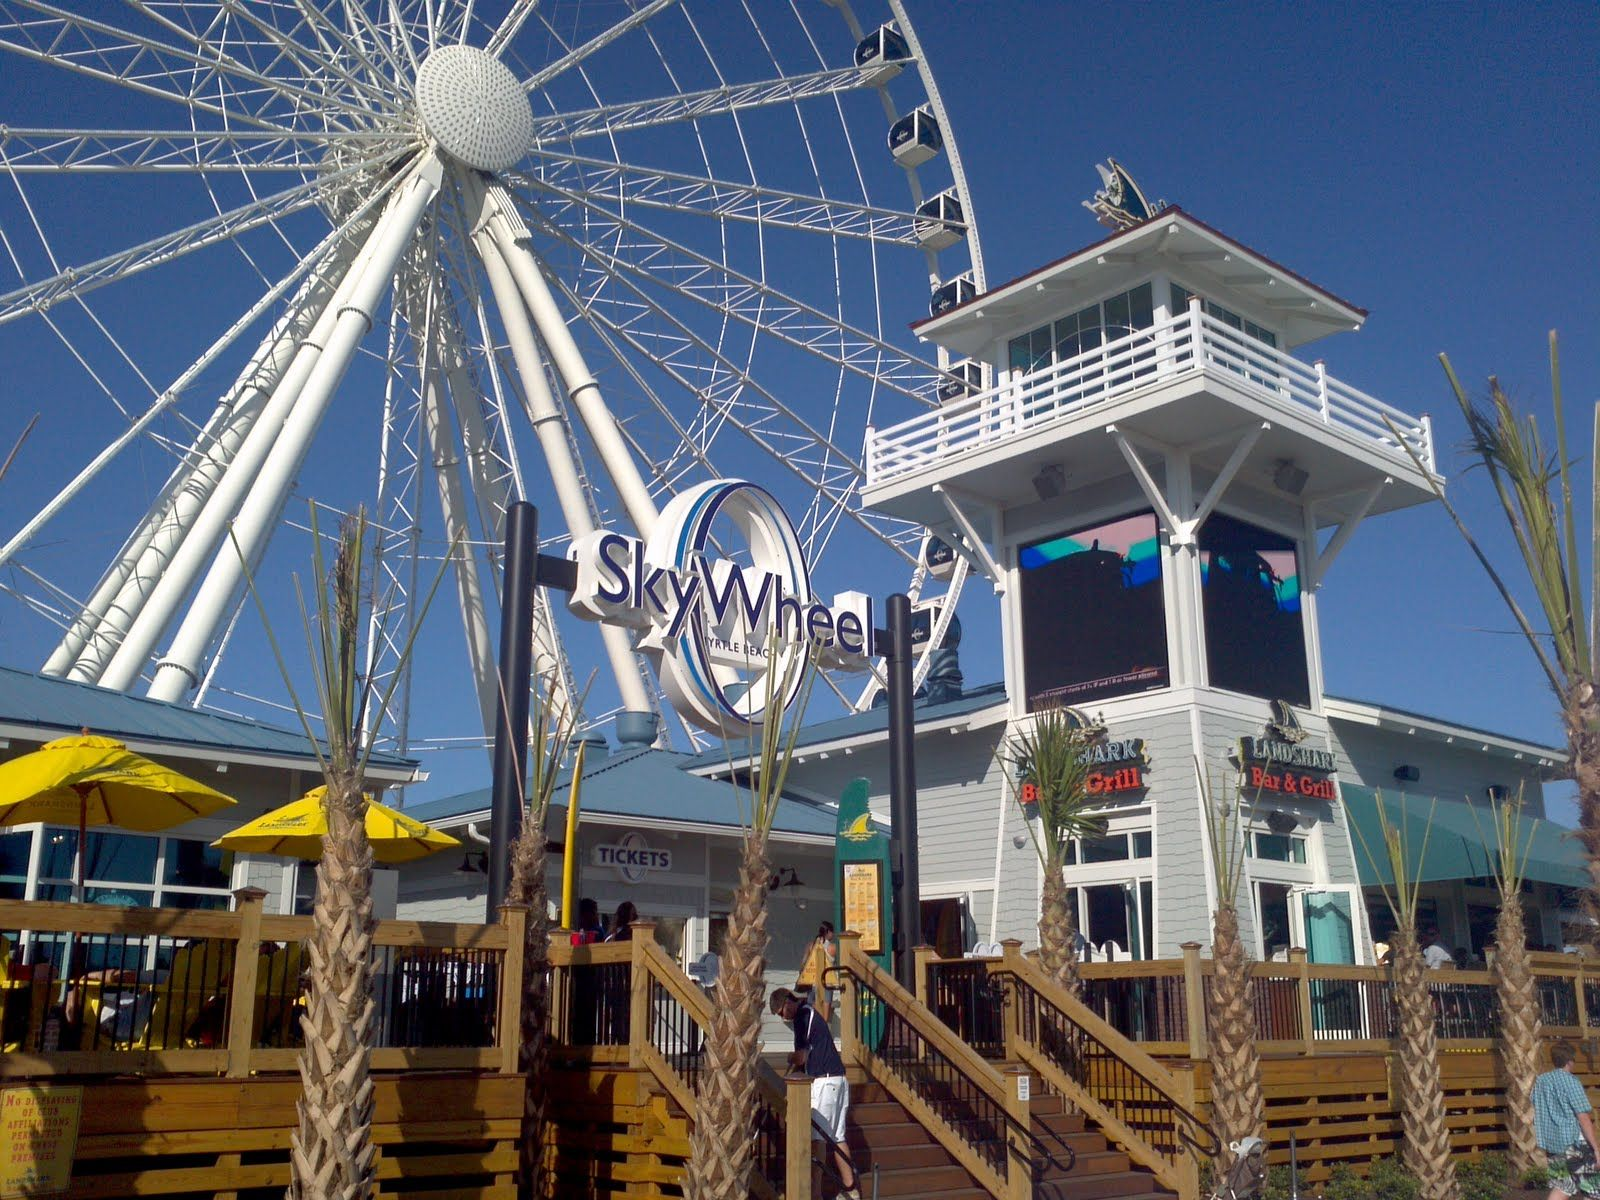 47 best things to do in myrtle beach images on pinterest myrtle